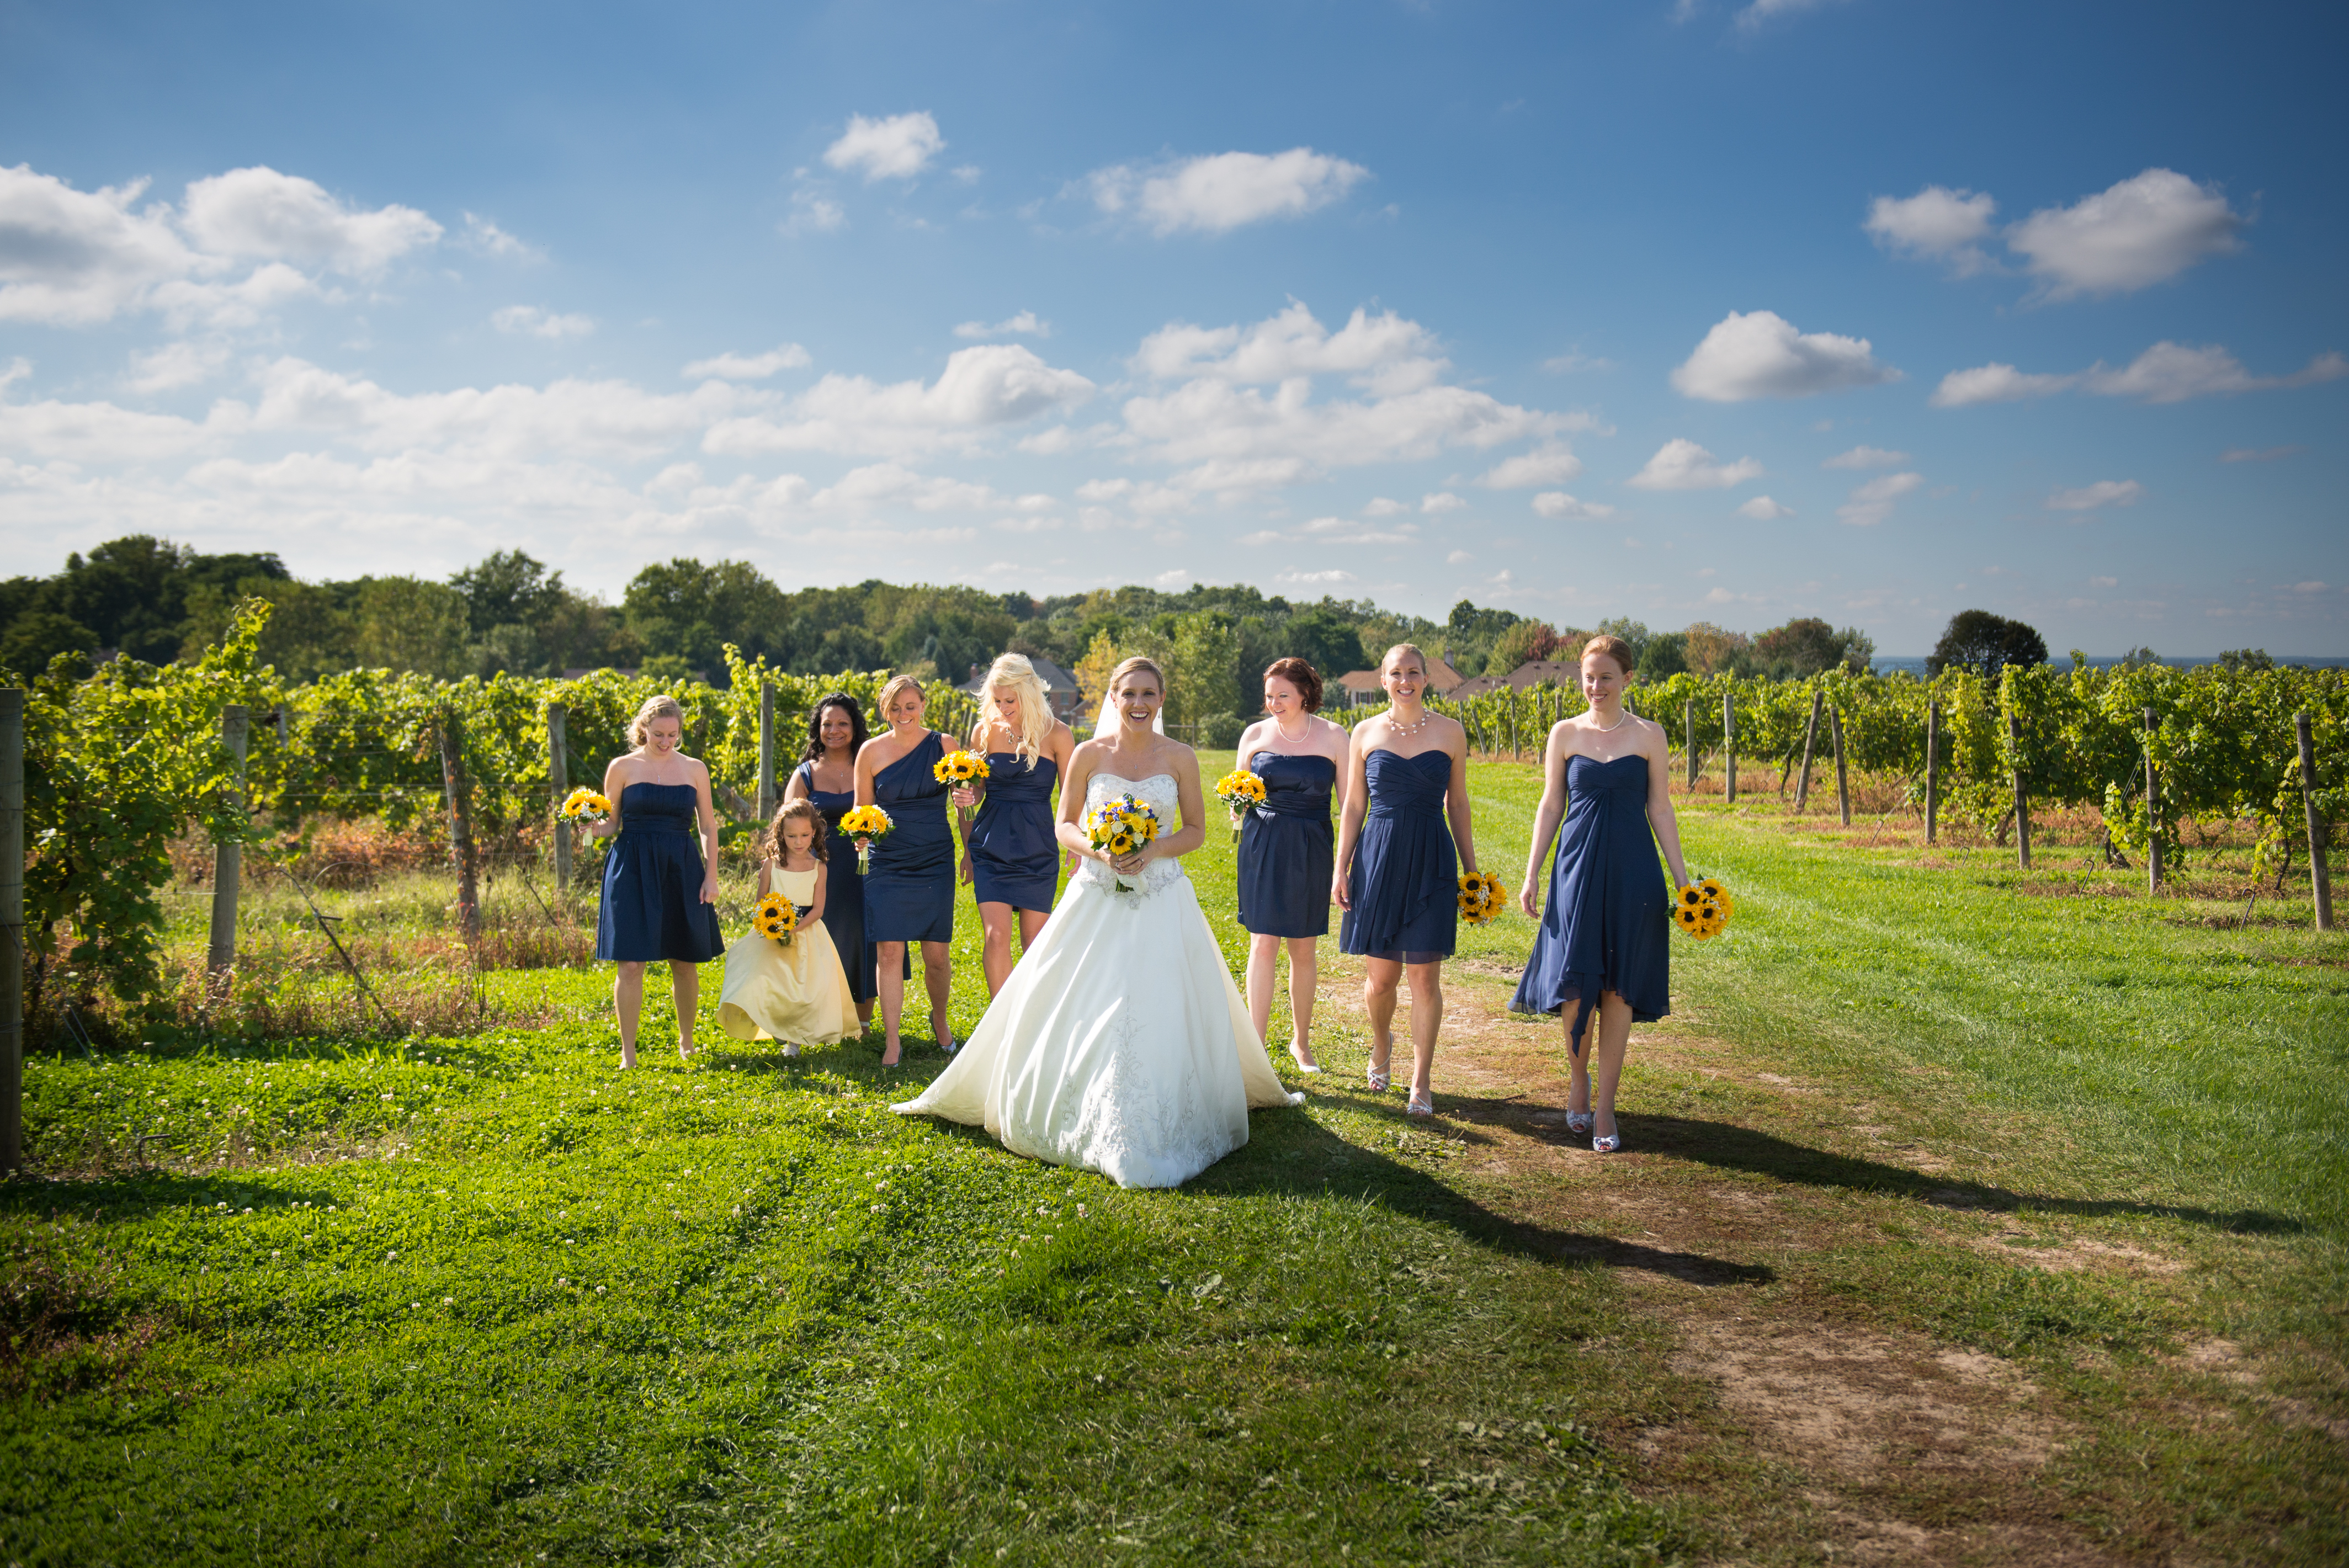 Bridal Party in the Vineyards, Wedding Receptions and Ceremonies at Casa Larga Vineyards